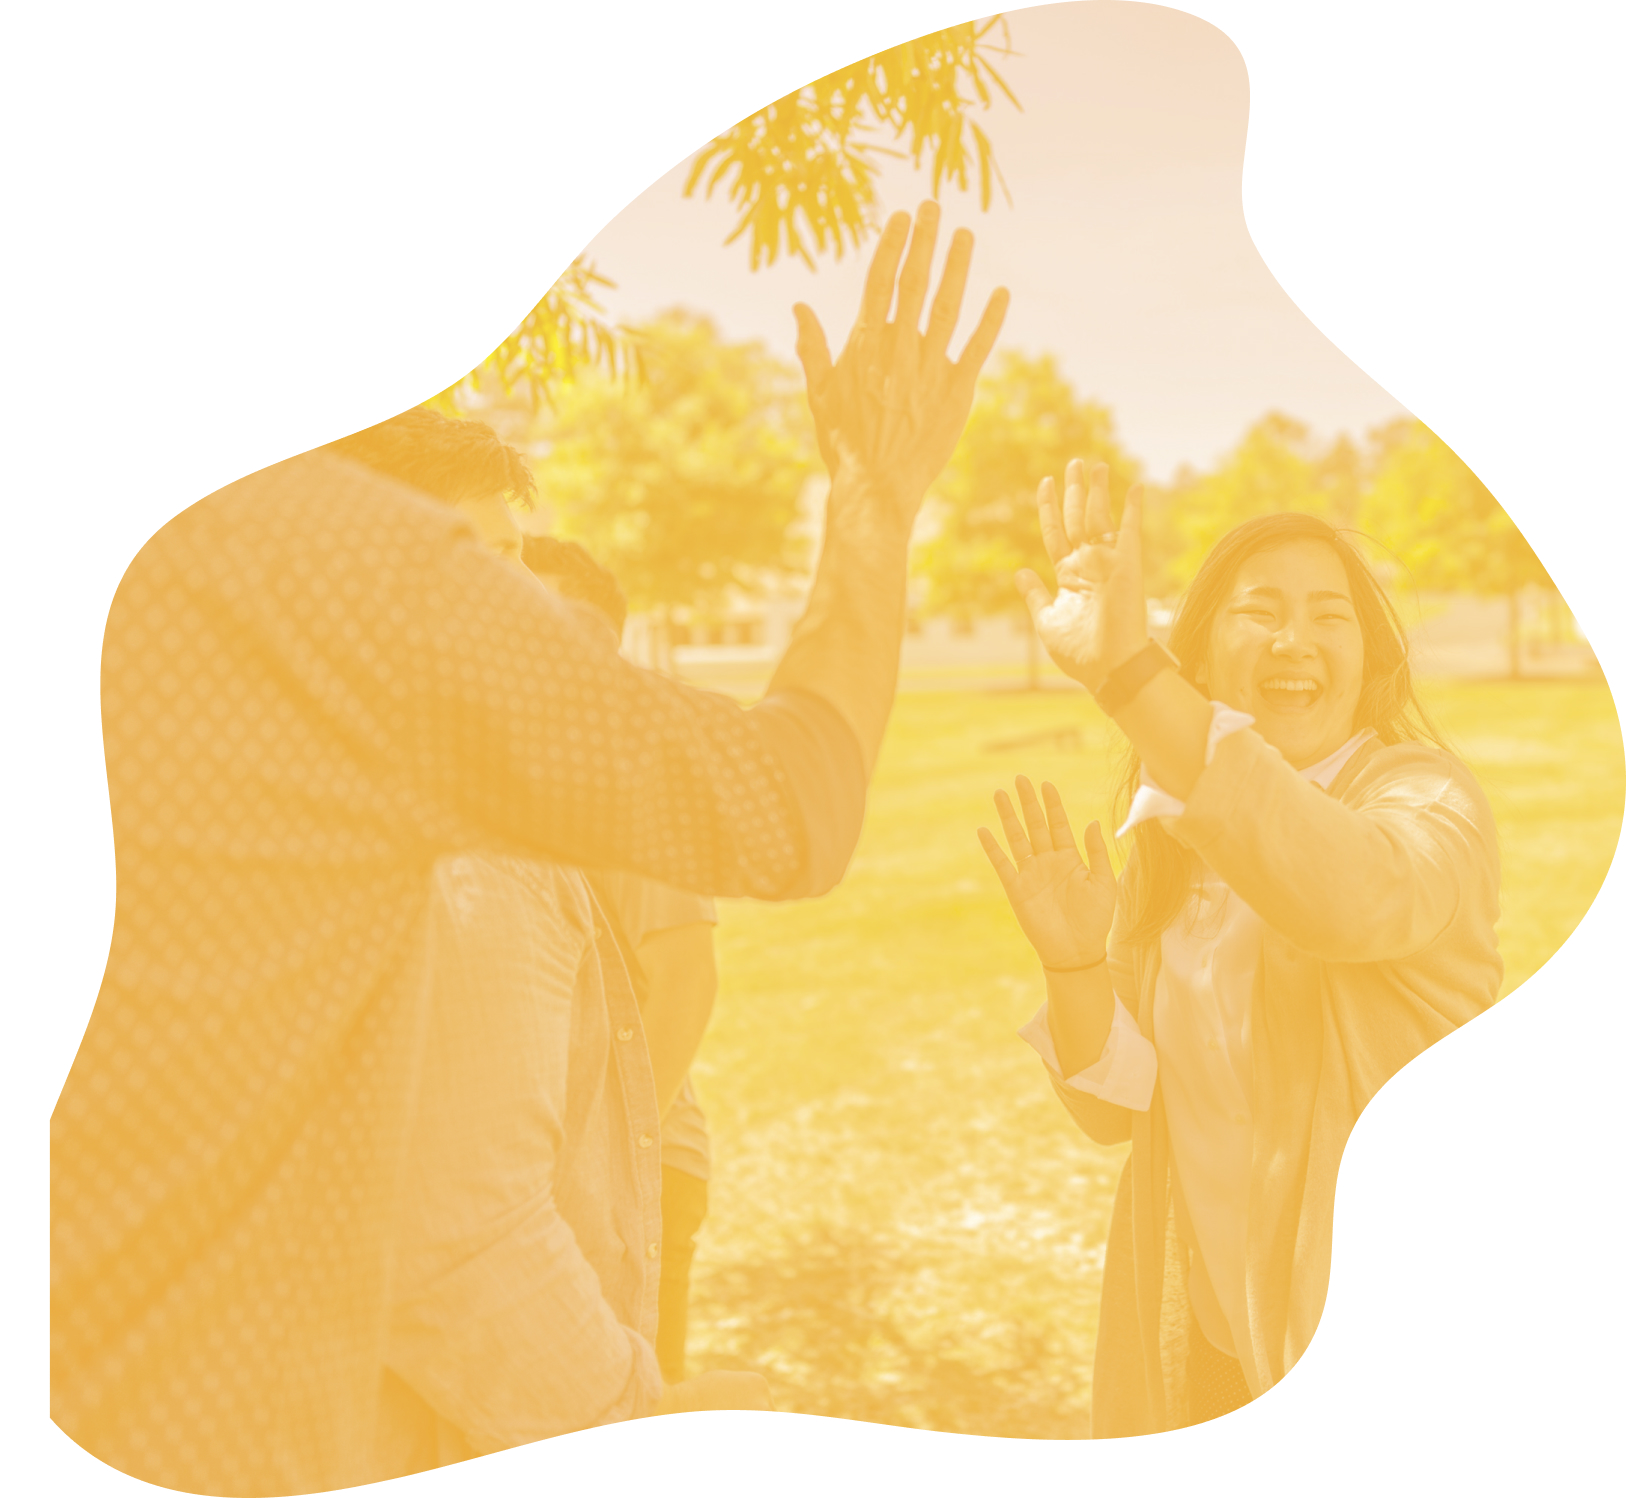 A group of people celebrate with high fives. A yellow overlay has been applied to the image.